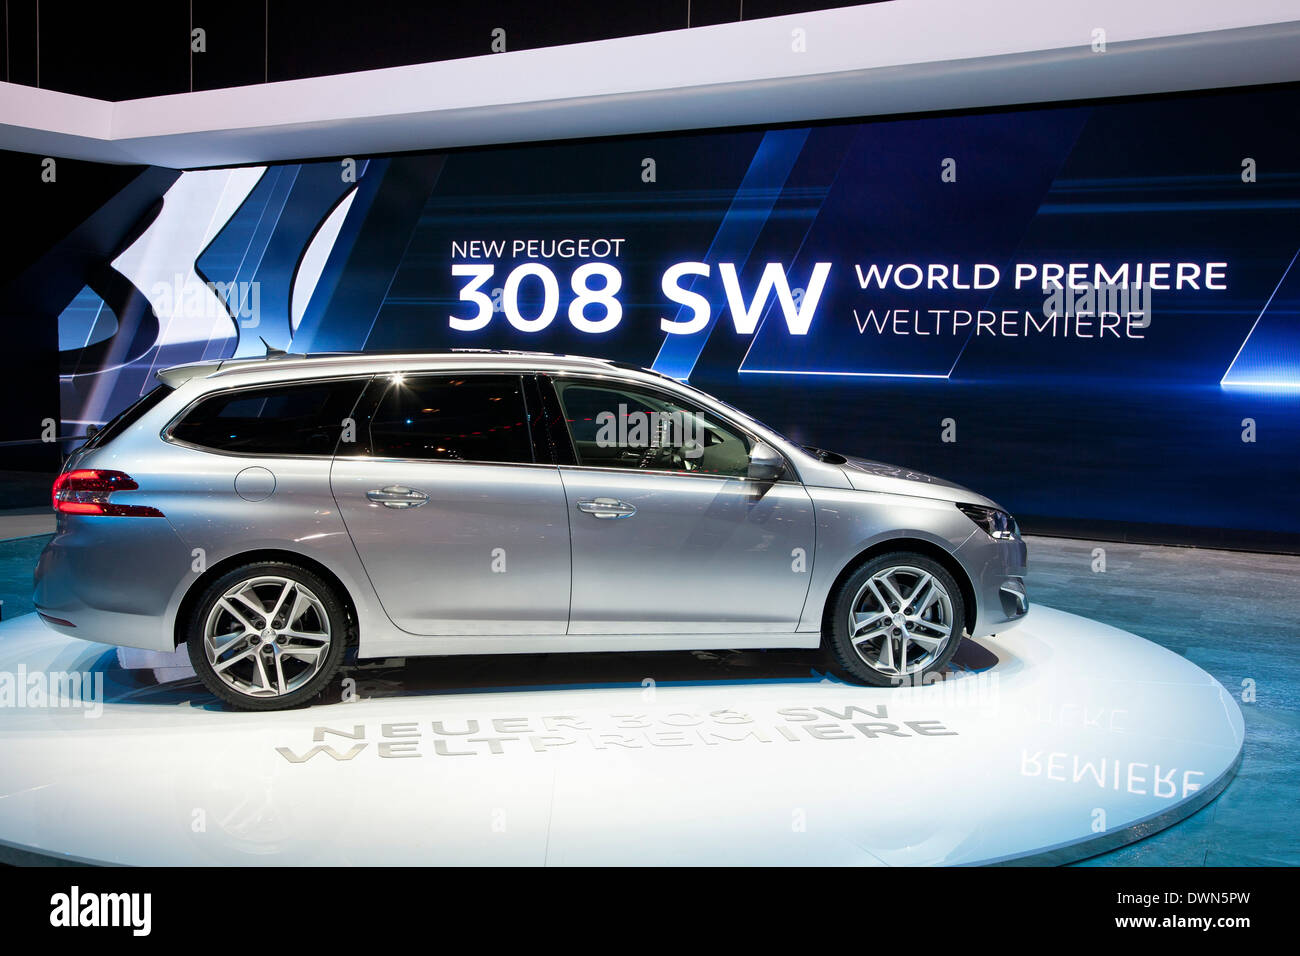 Peugeot 308 SW 'Car of the Year 2014' at the 84th Geneva International Motor Show. - Stock Image